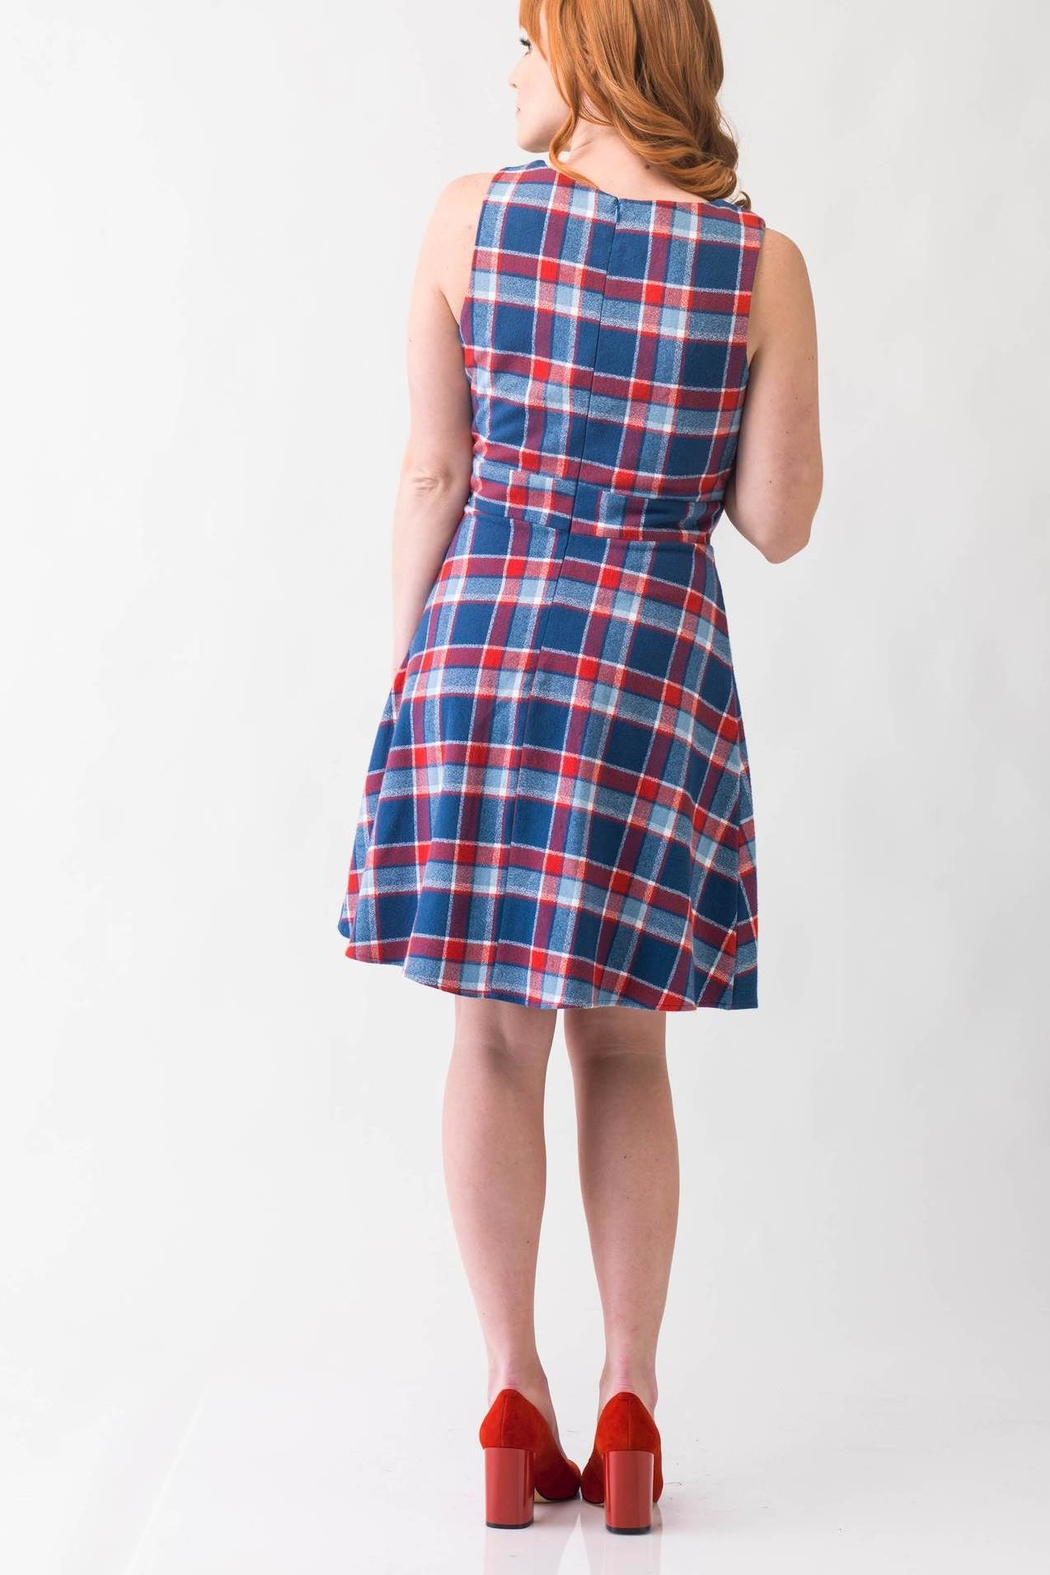 Smak Parlour Plaid Retro Dress - Front Full Image